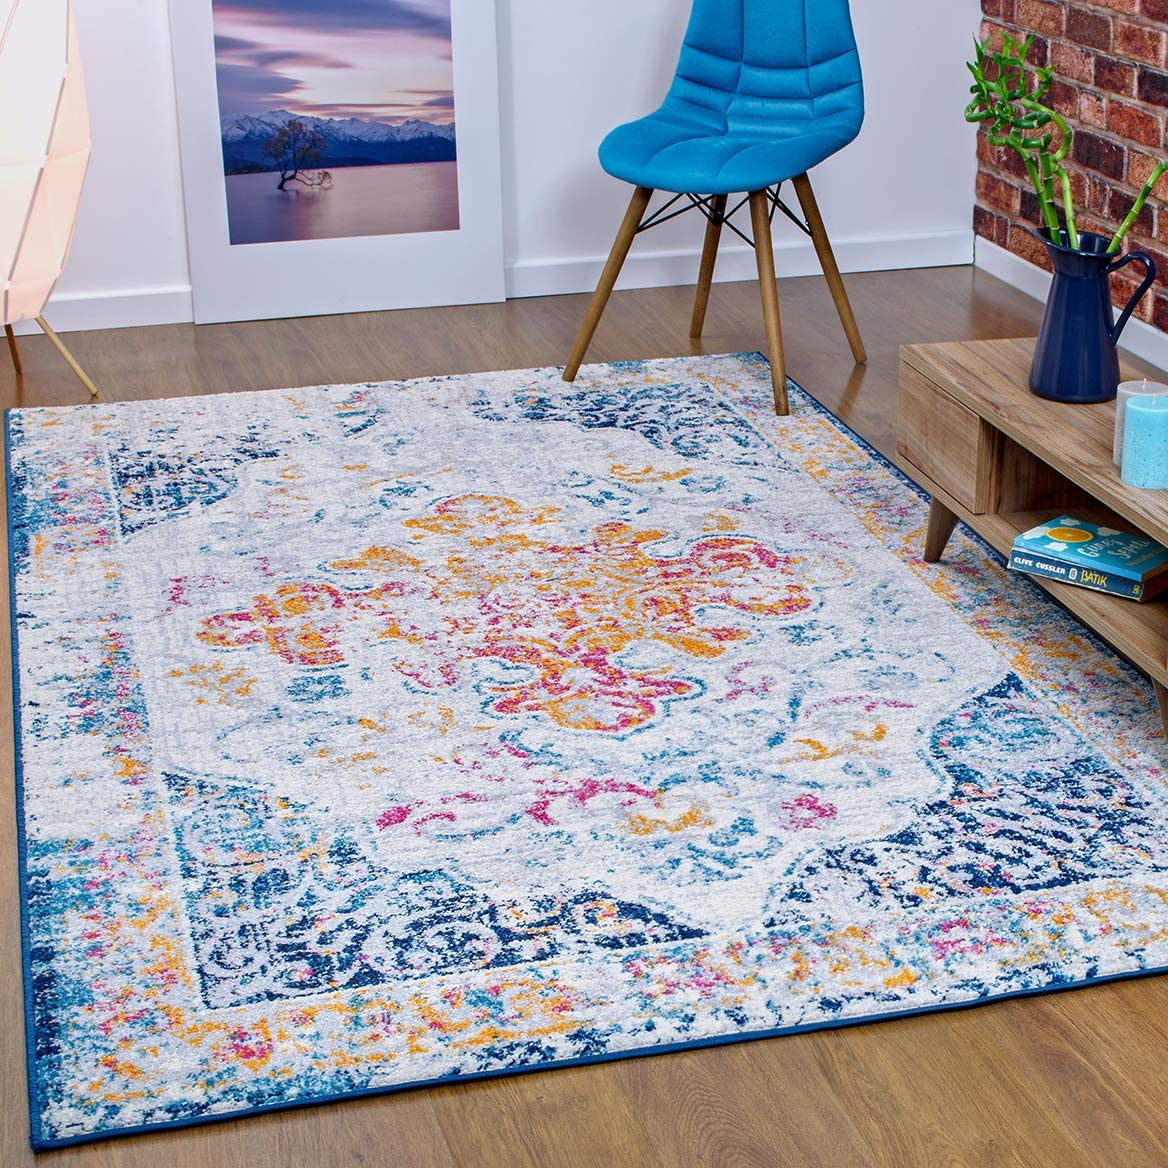 Antep Rugs Elite Collection Bohemian Distressed DSG44 Indoor Area Rug Multi, 9 x 12